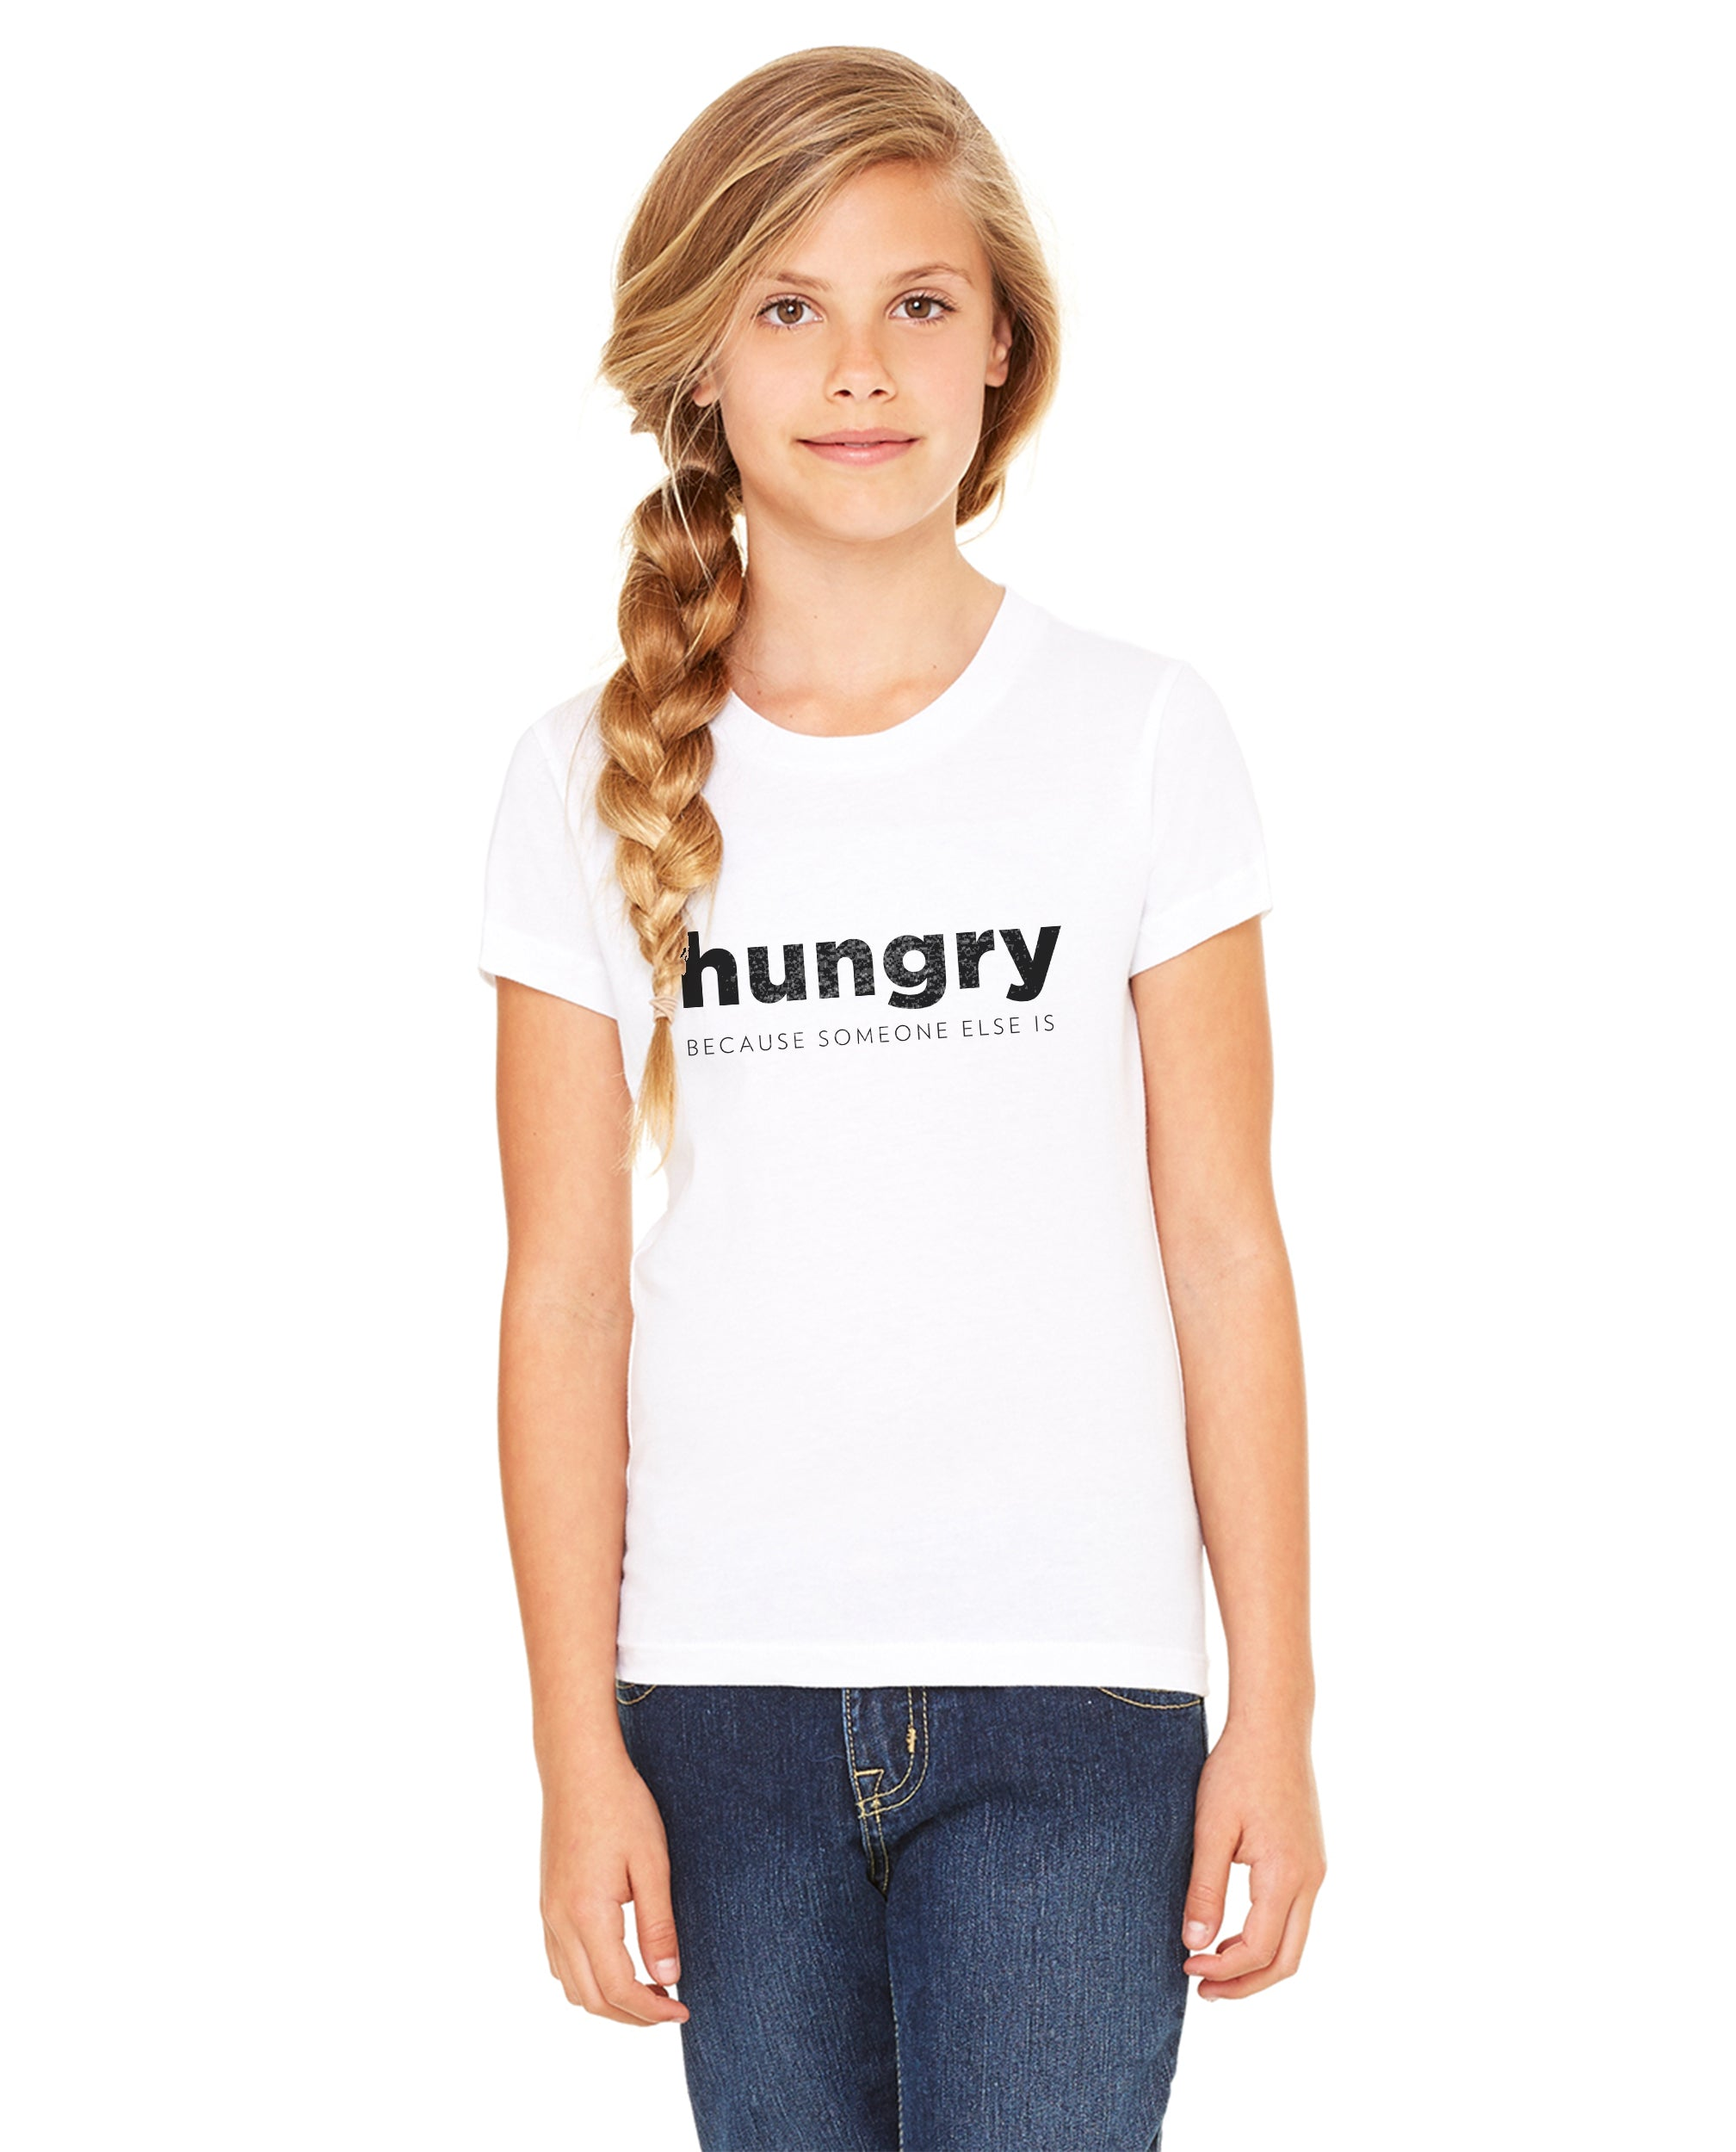 HUNGRY Unisex Premium Crewneck Tee For The Family